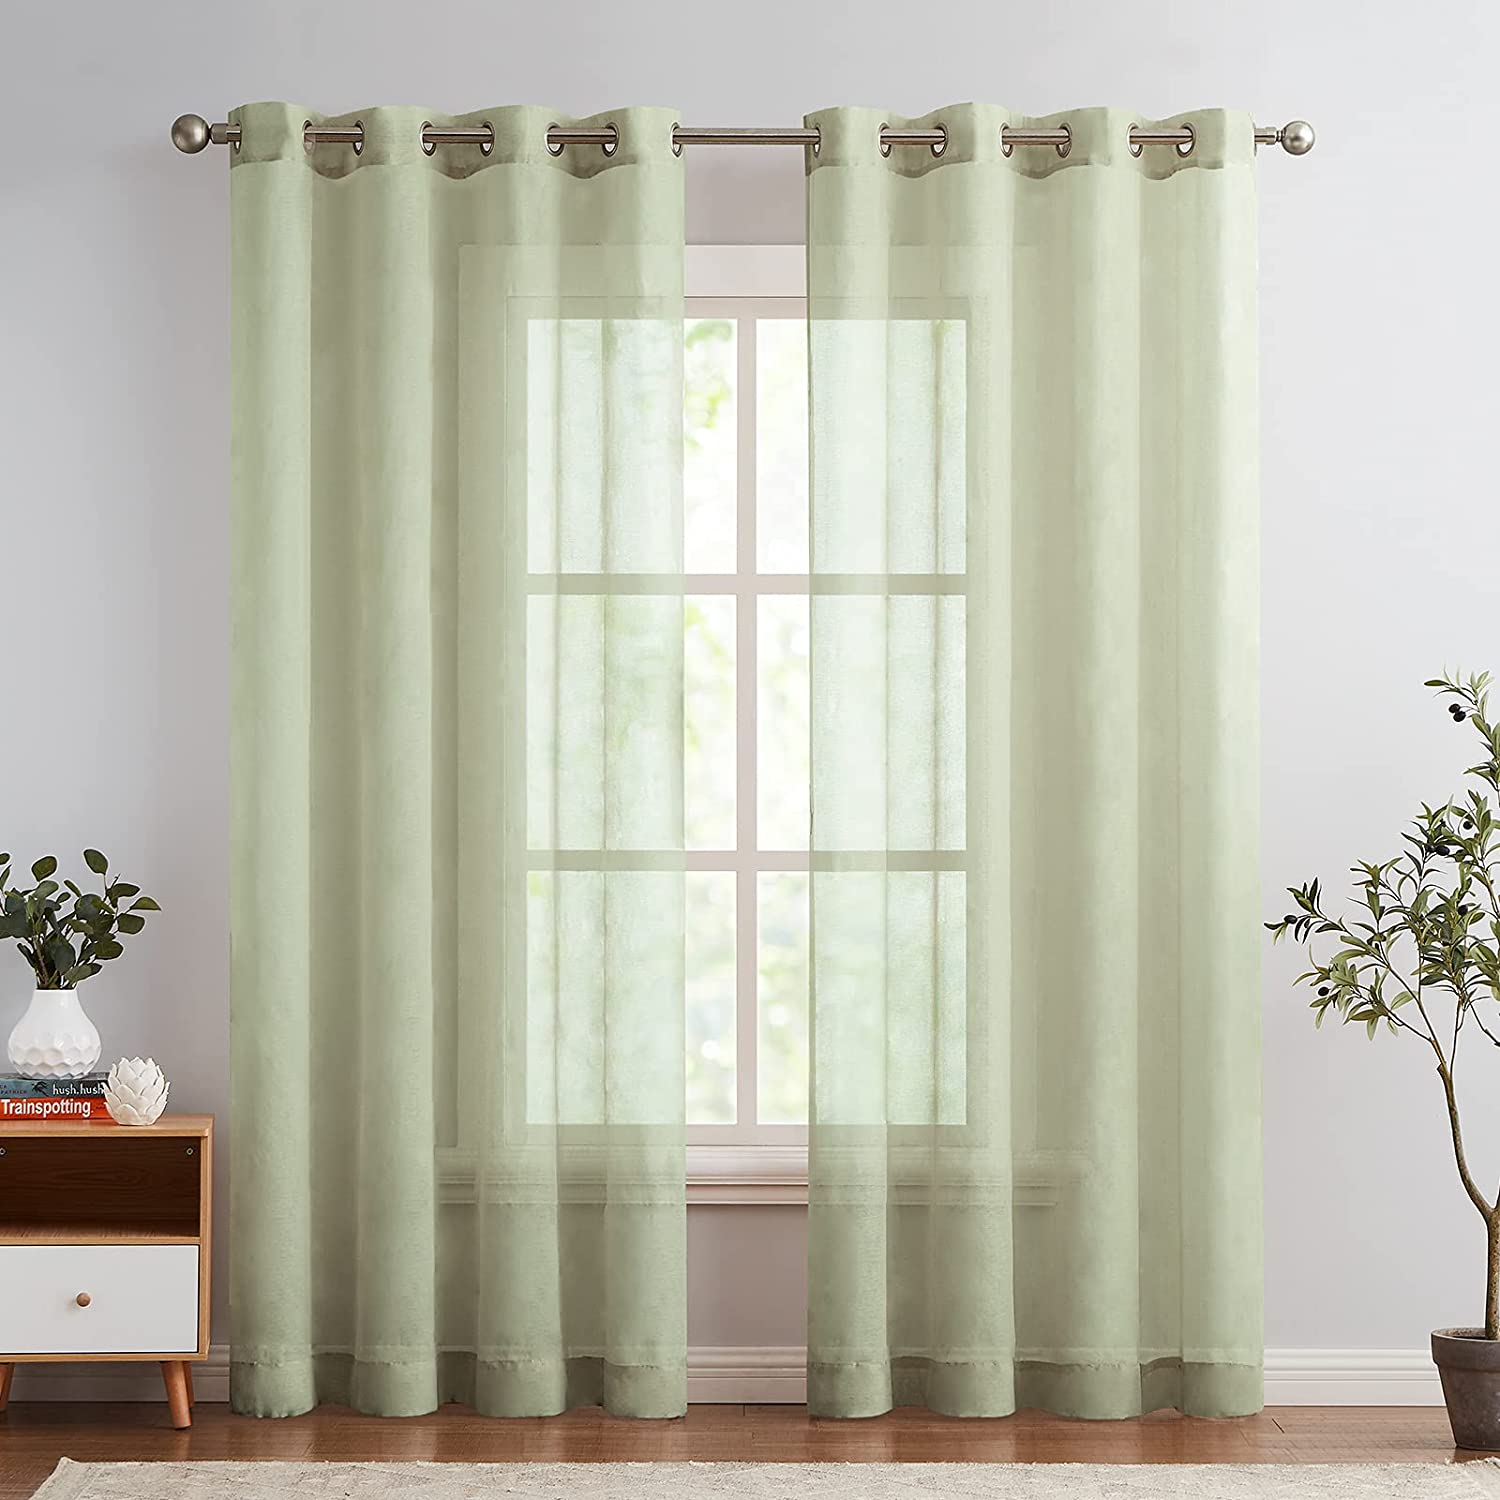 Over item handling Lazzzy Voile Sheer New Orleans Mall Curtains for Top Dr Grommet Room Living